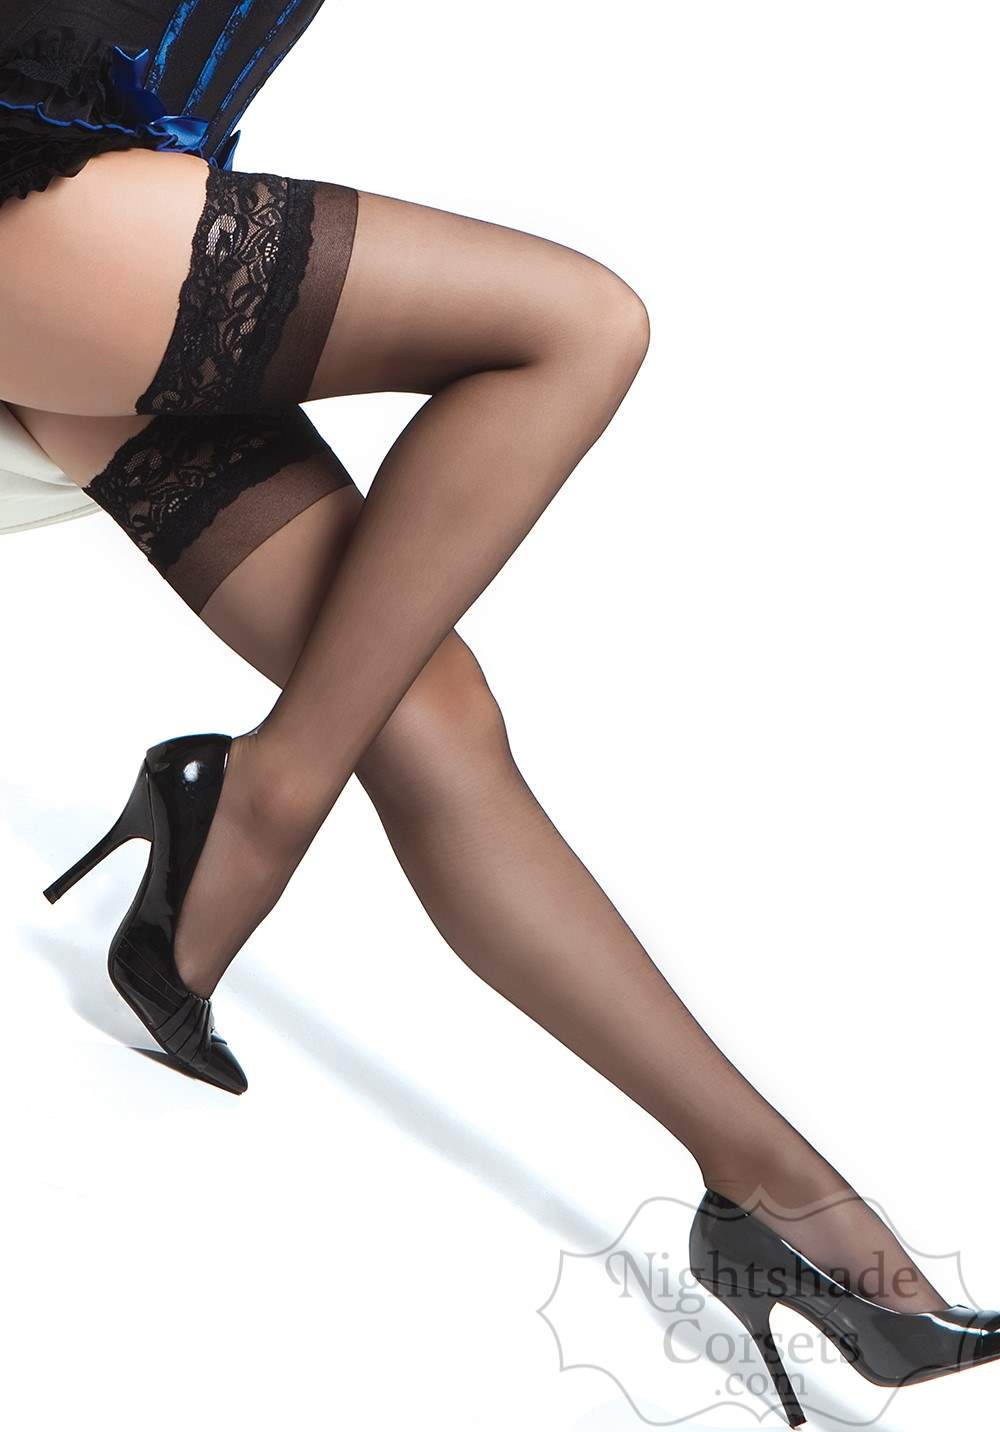 Classic sheer stockings feature a silicone backed lace top 1750 Edmonton